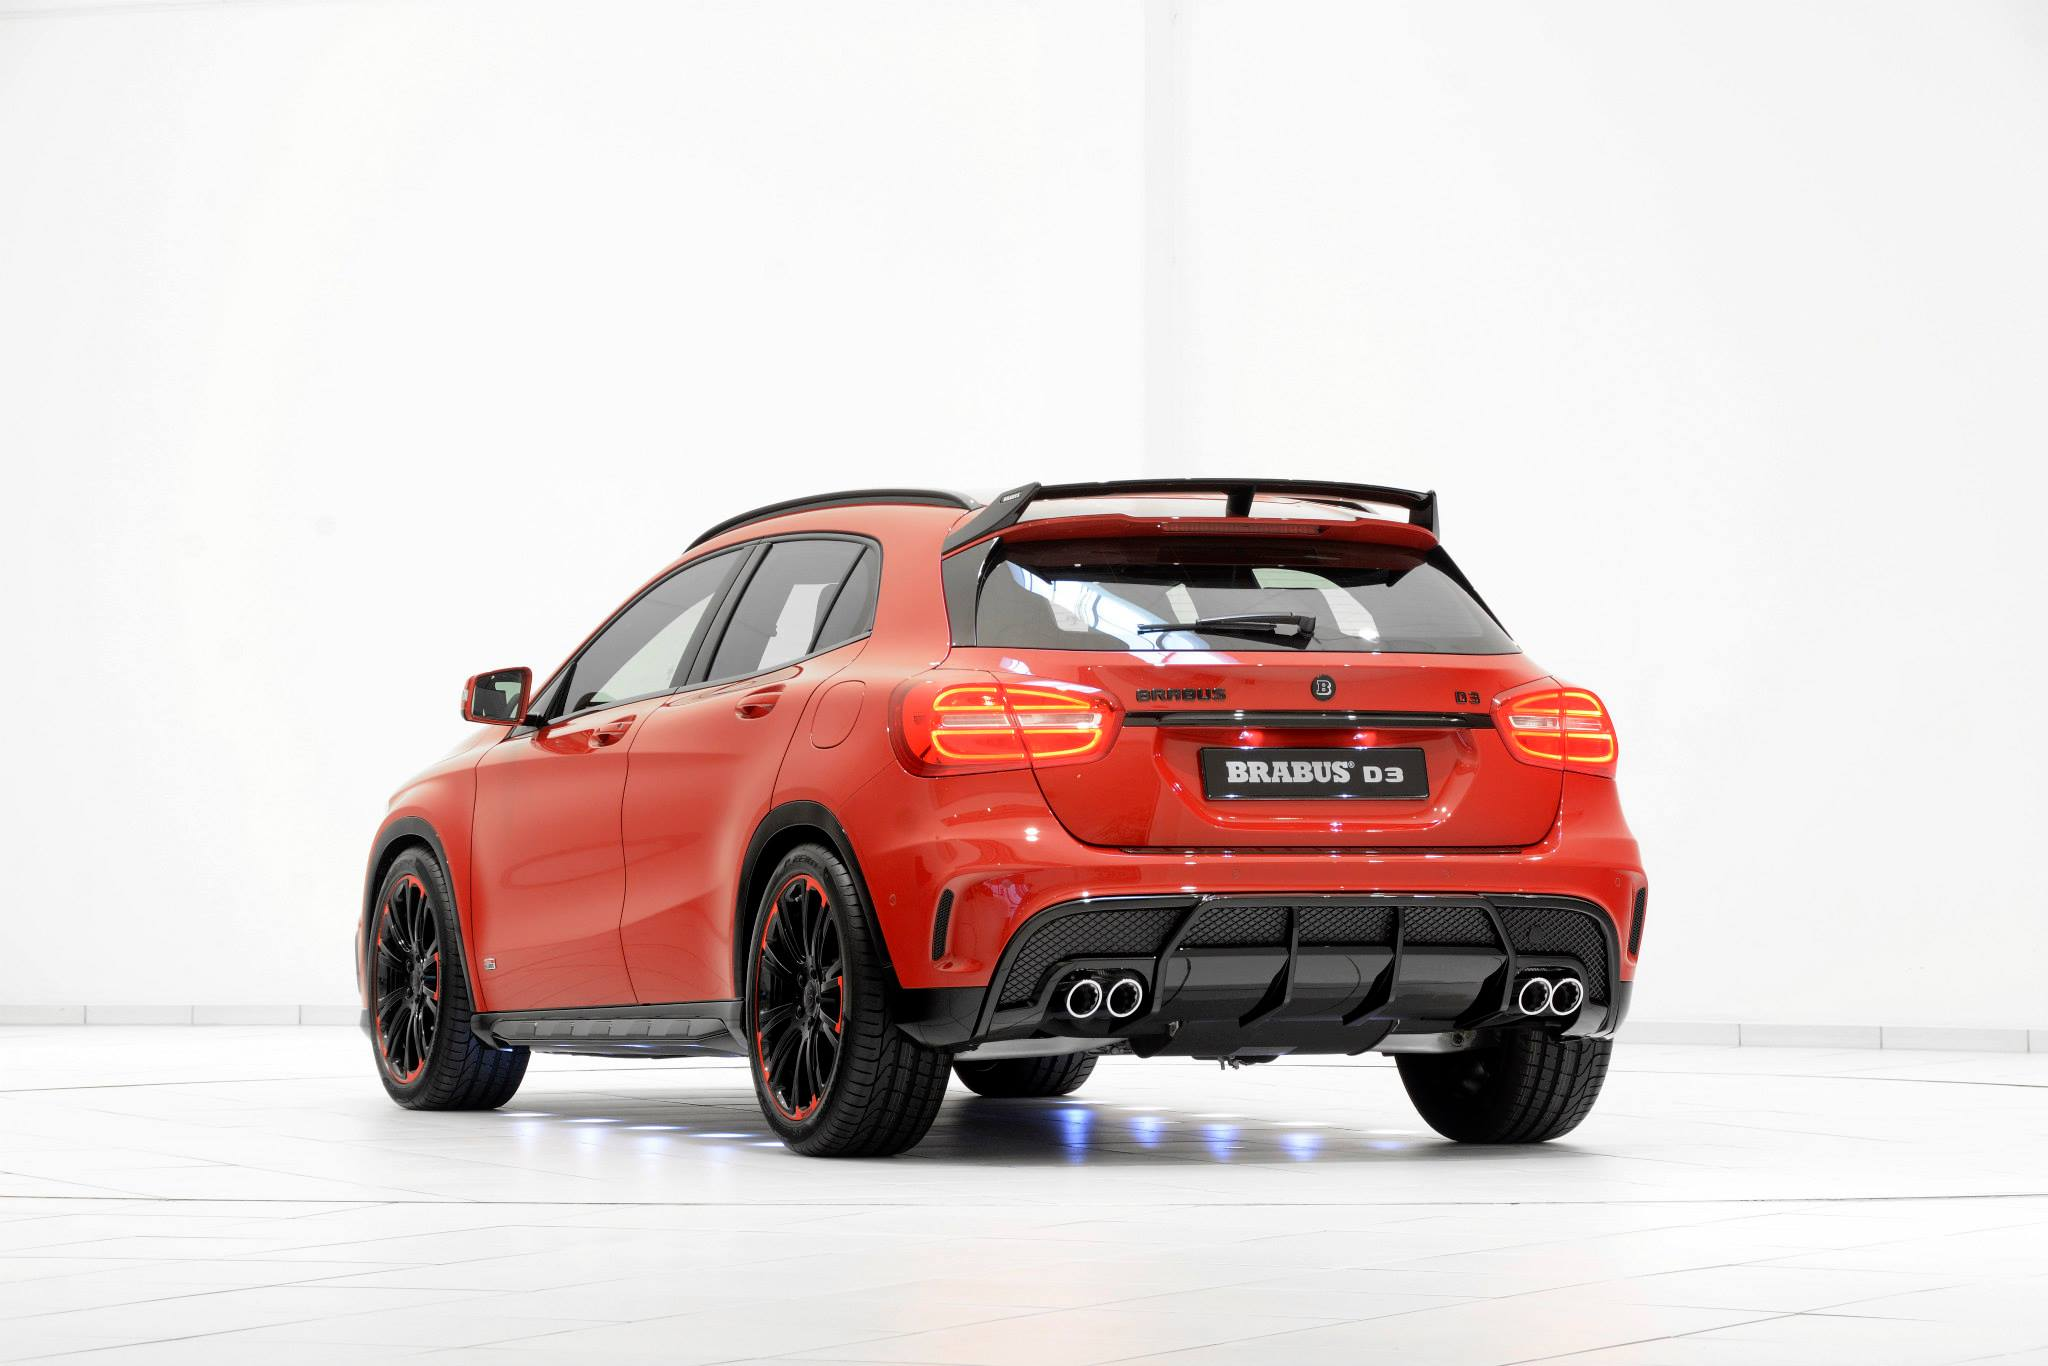 mercedes gla tuned by brabus looks stunning in red and black gets diesel power boost. Black Bedroom Furniture Sets. Home Design Ideas